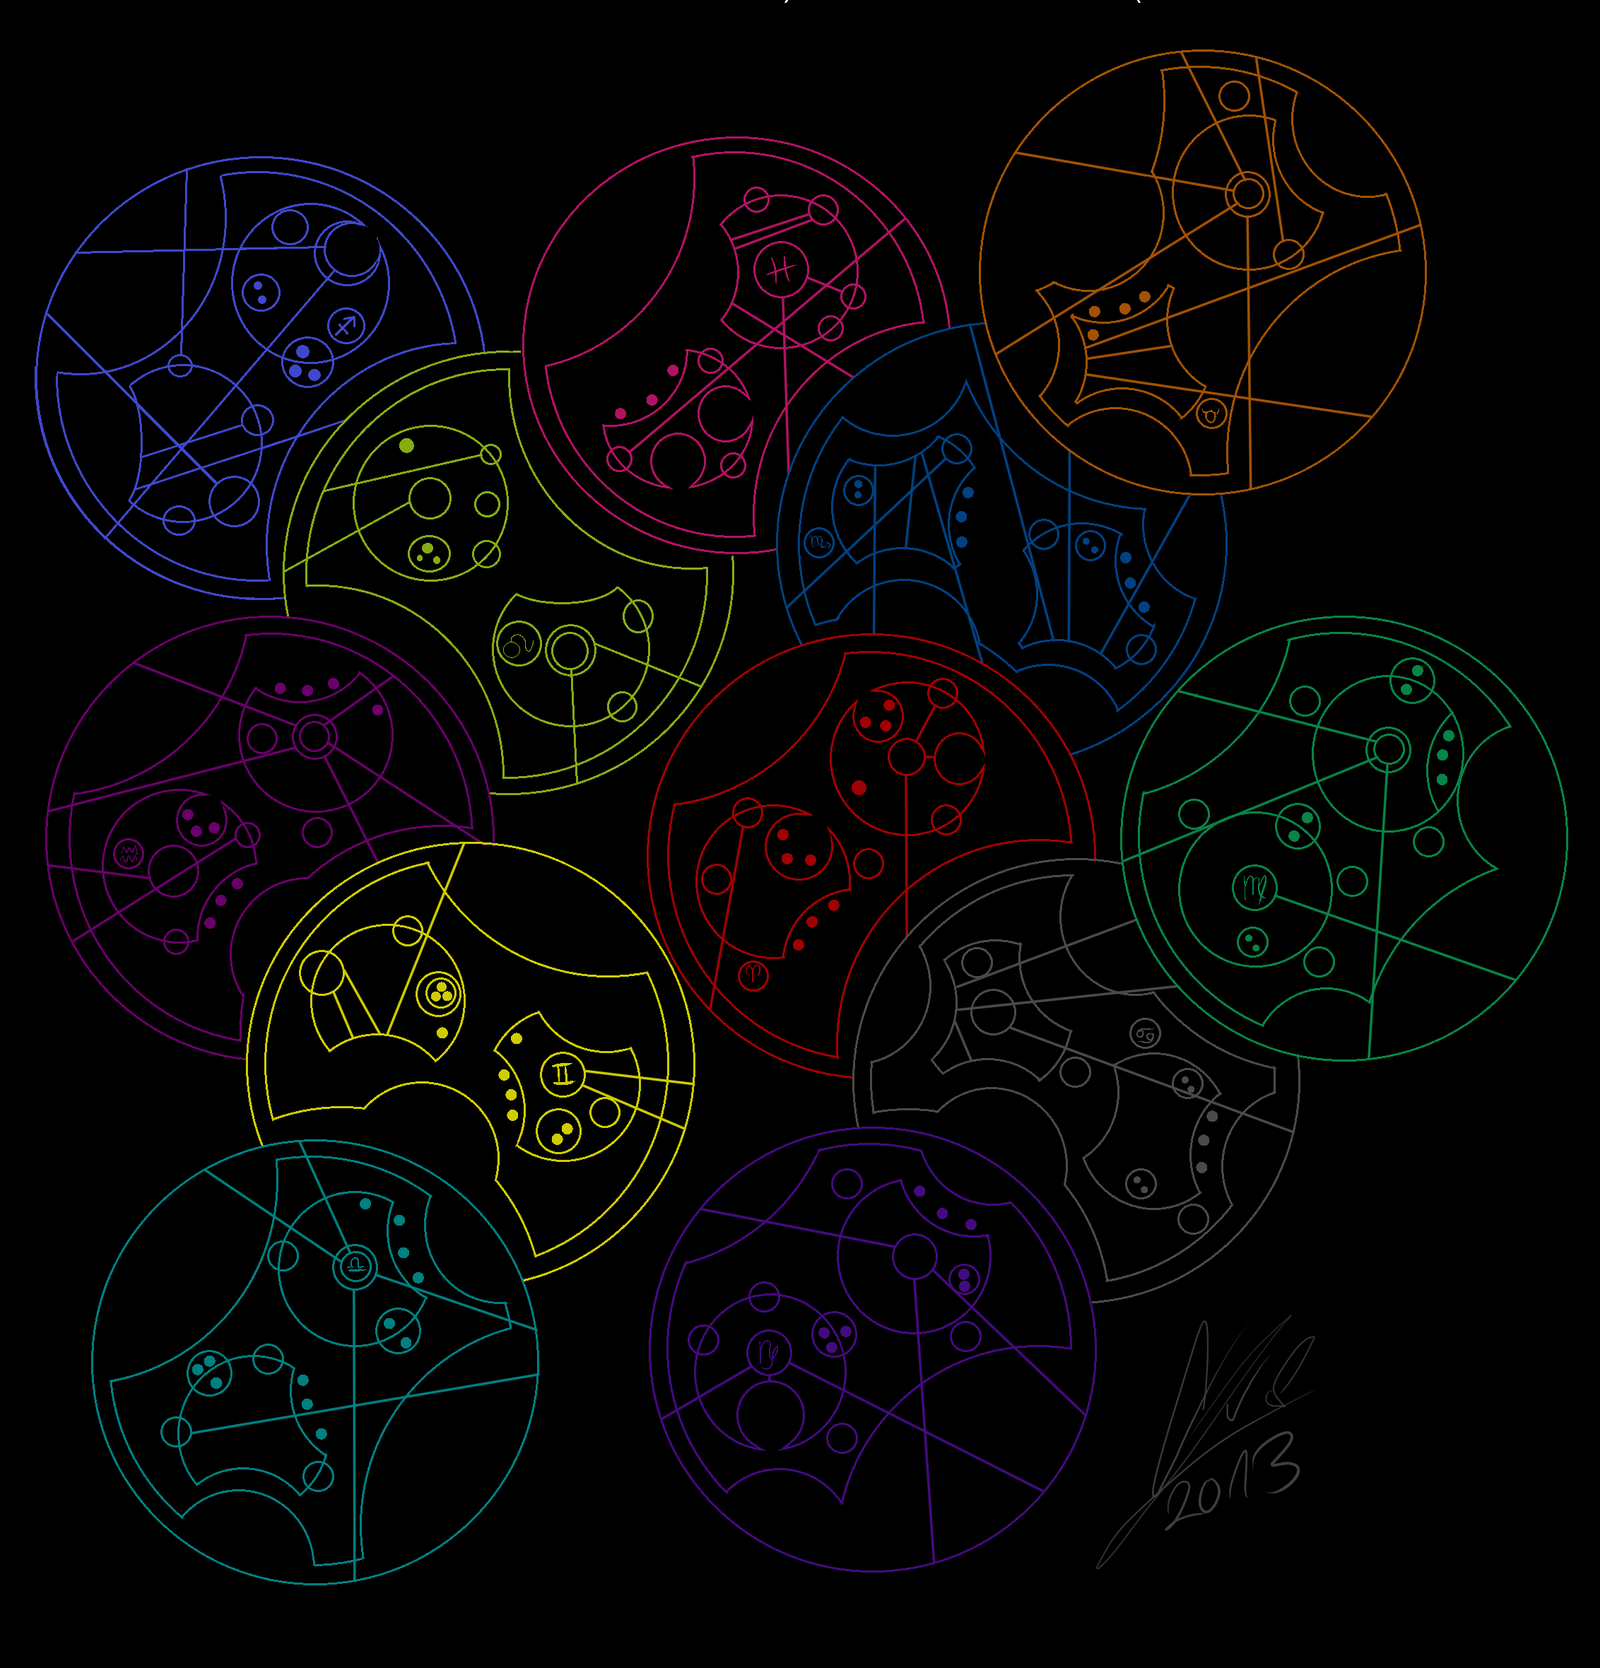 gallifreyan symbols wallpaper - photo #8